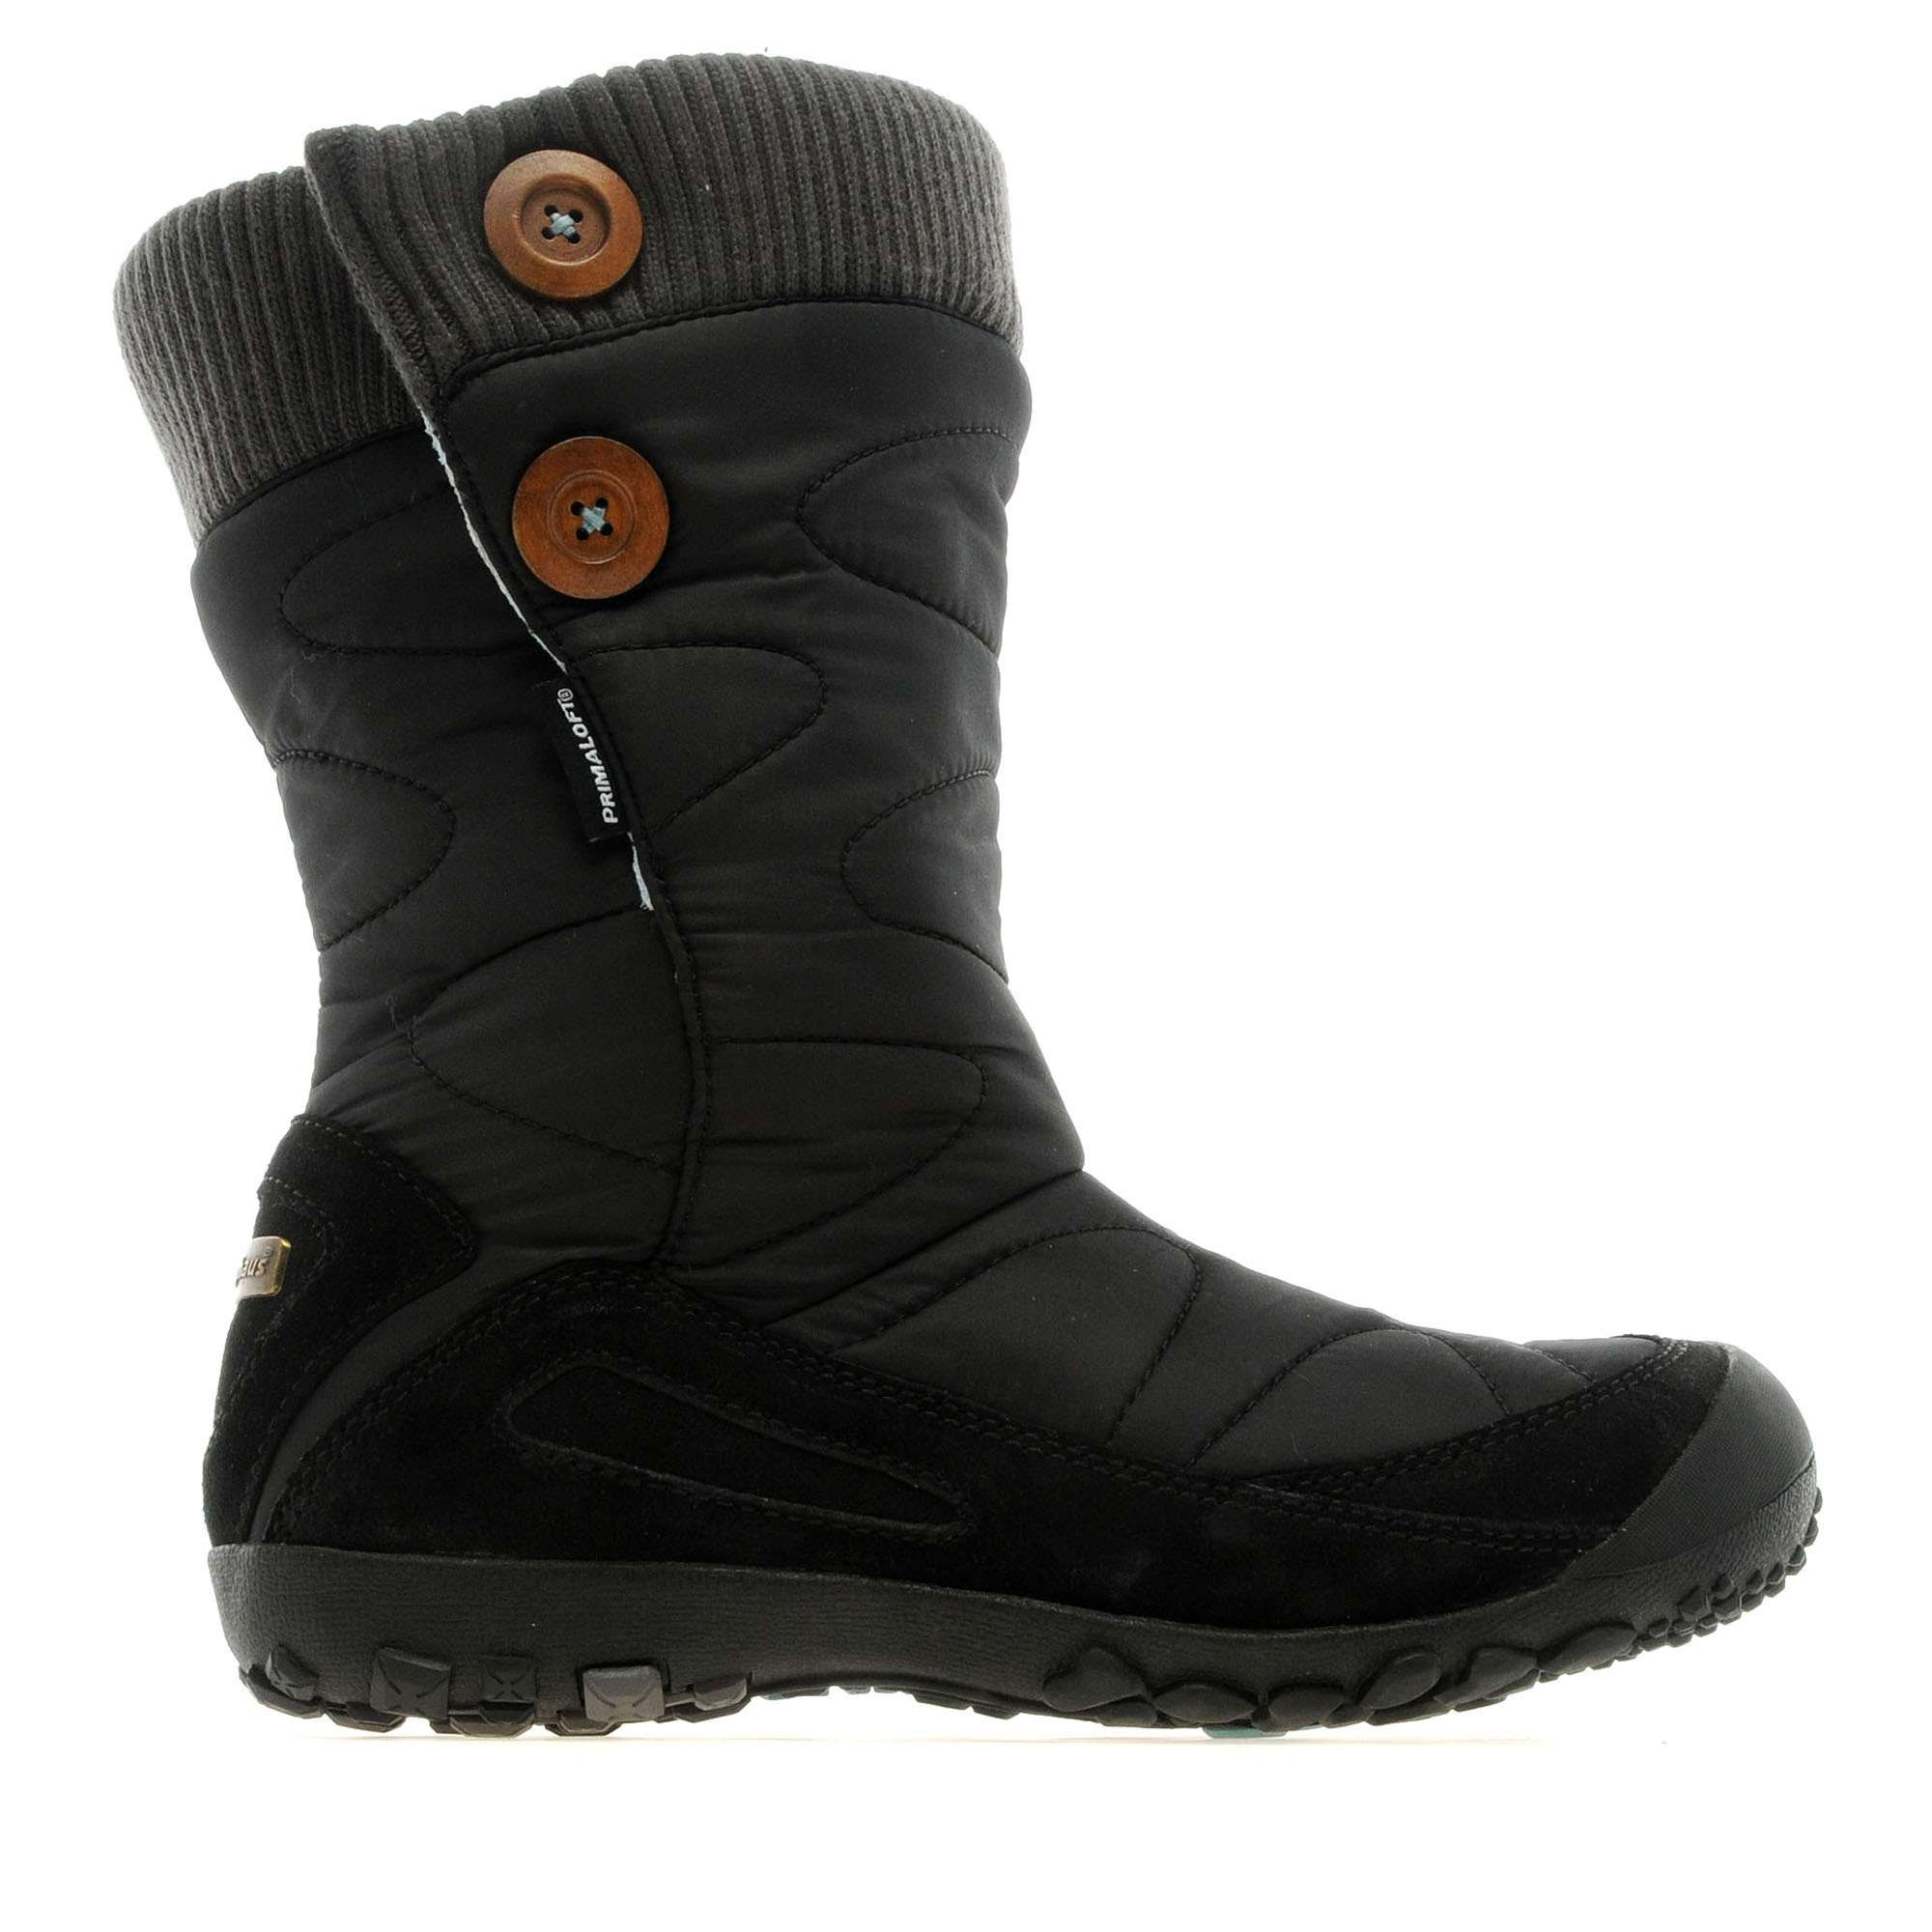 BERGHAUS Women's Cloudelle Insulated Winter Boots